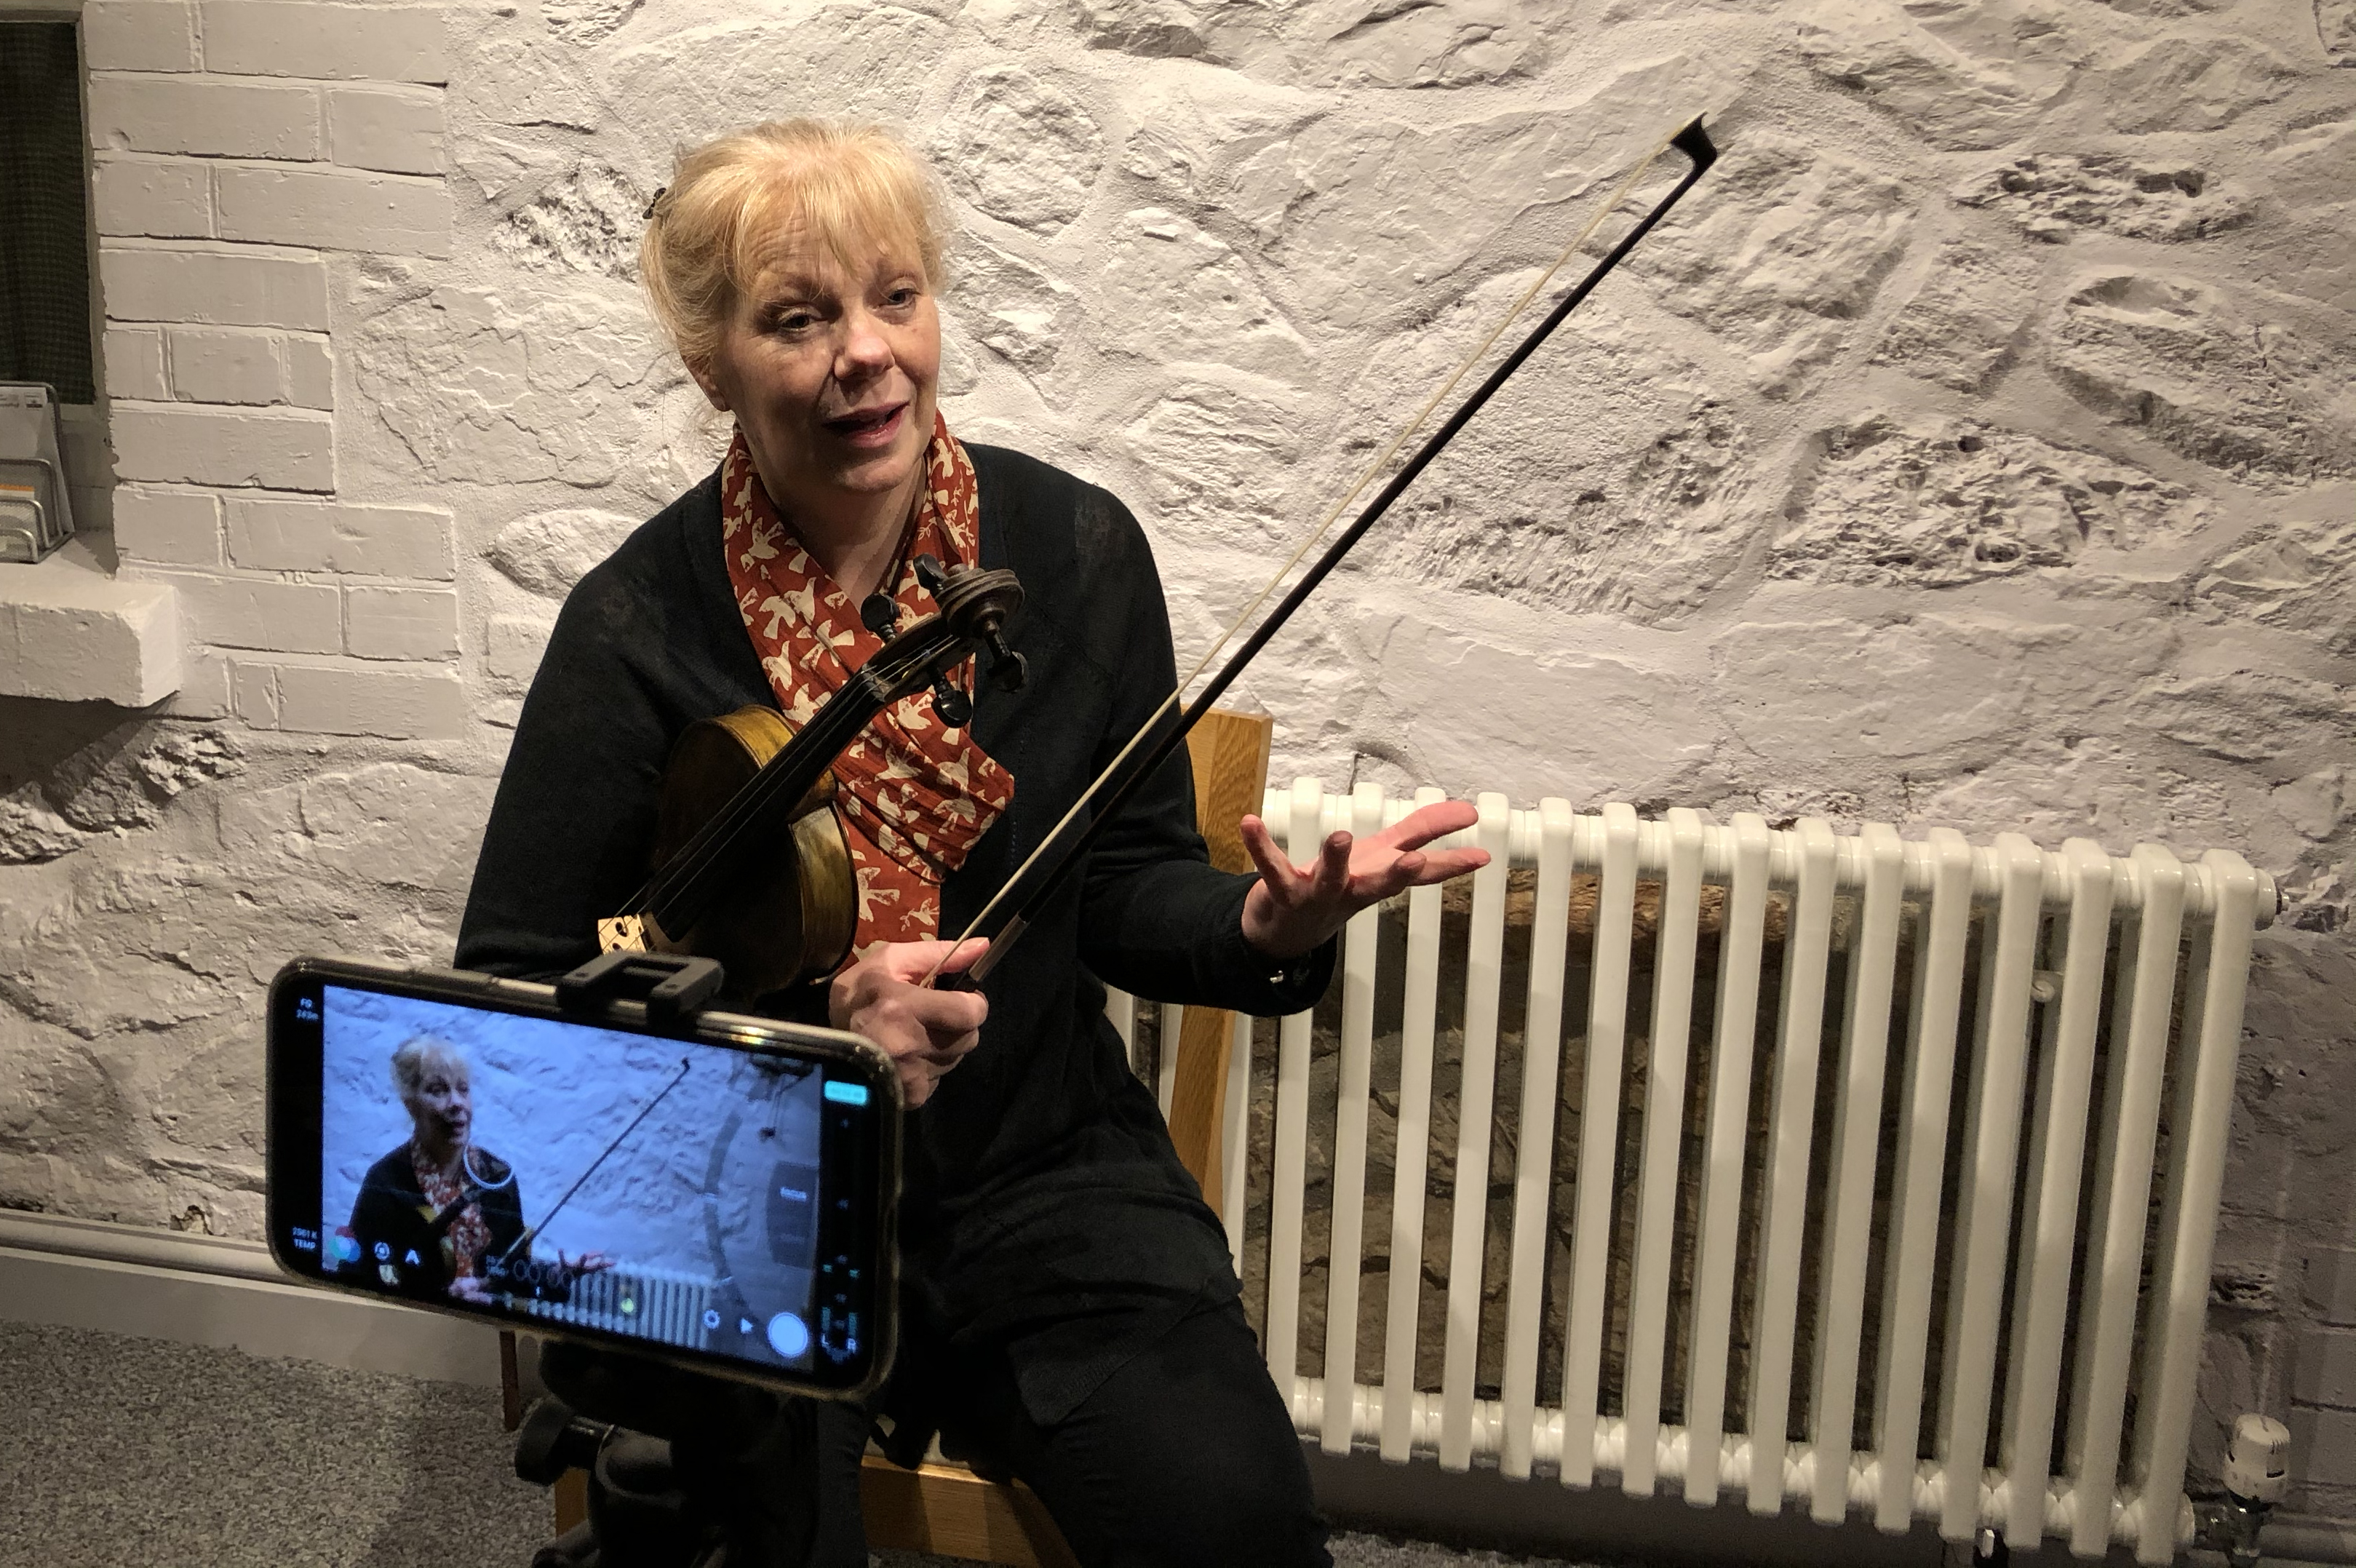 Gillian Taylor with a violin under her arm, being filmed on a mobile phone